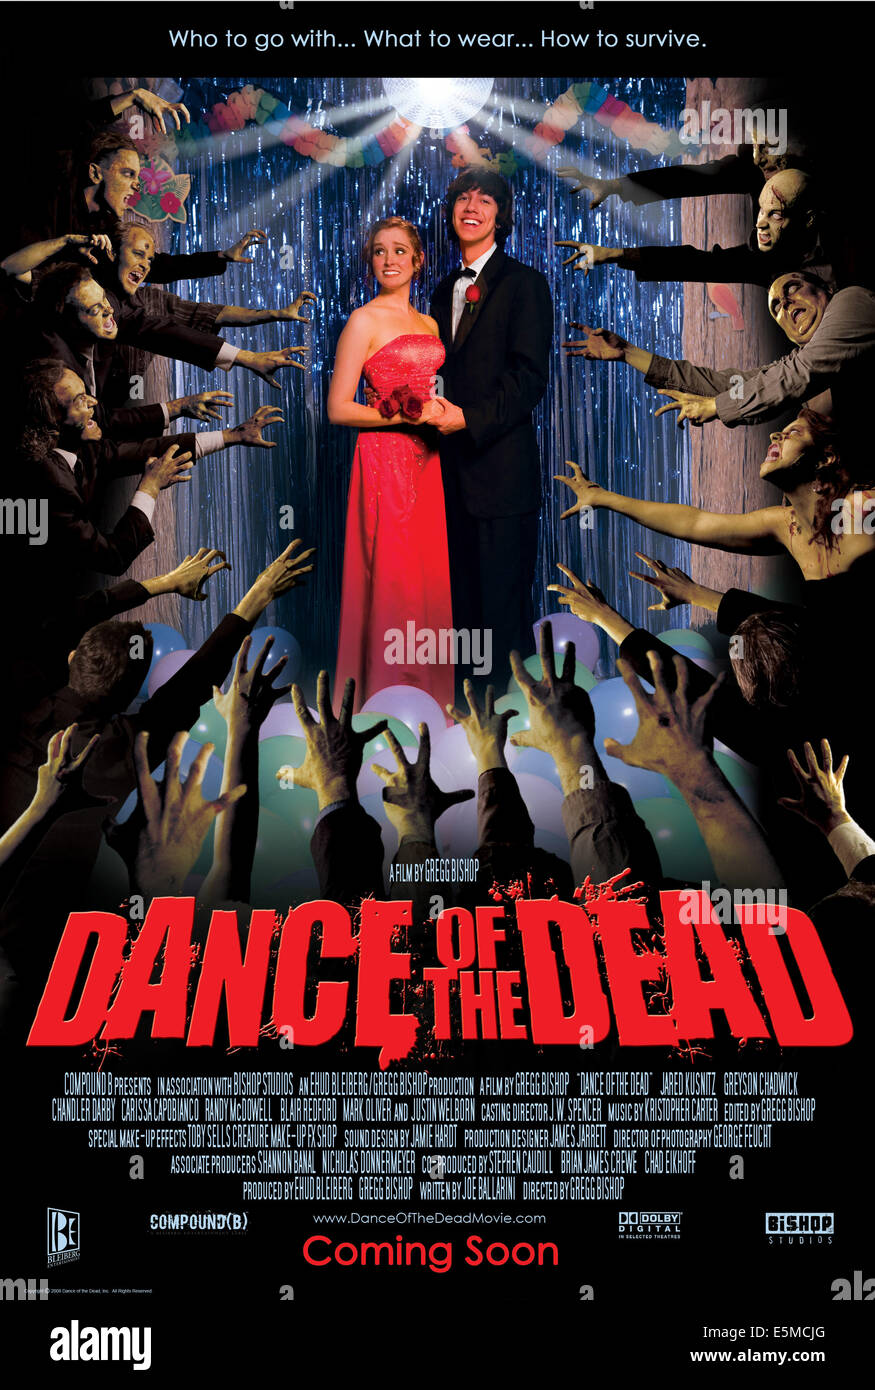 DANCE OF THE DEAD, US poster art, from left: Greyson Chadwick, Jared Kusnitz, 2008. ©Ghosthouse Underground/Courtesy - Stock Image